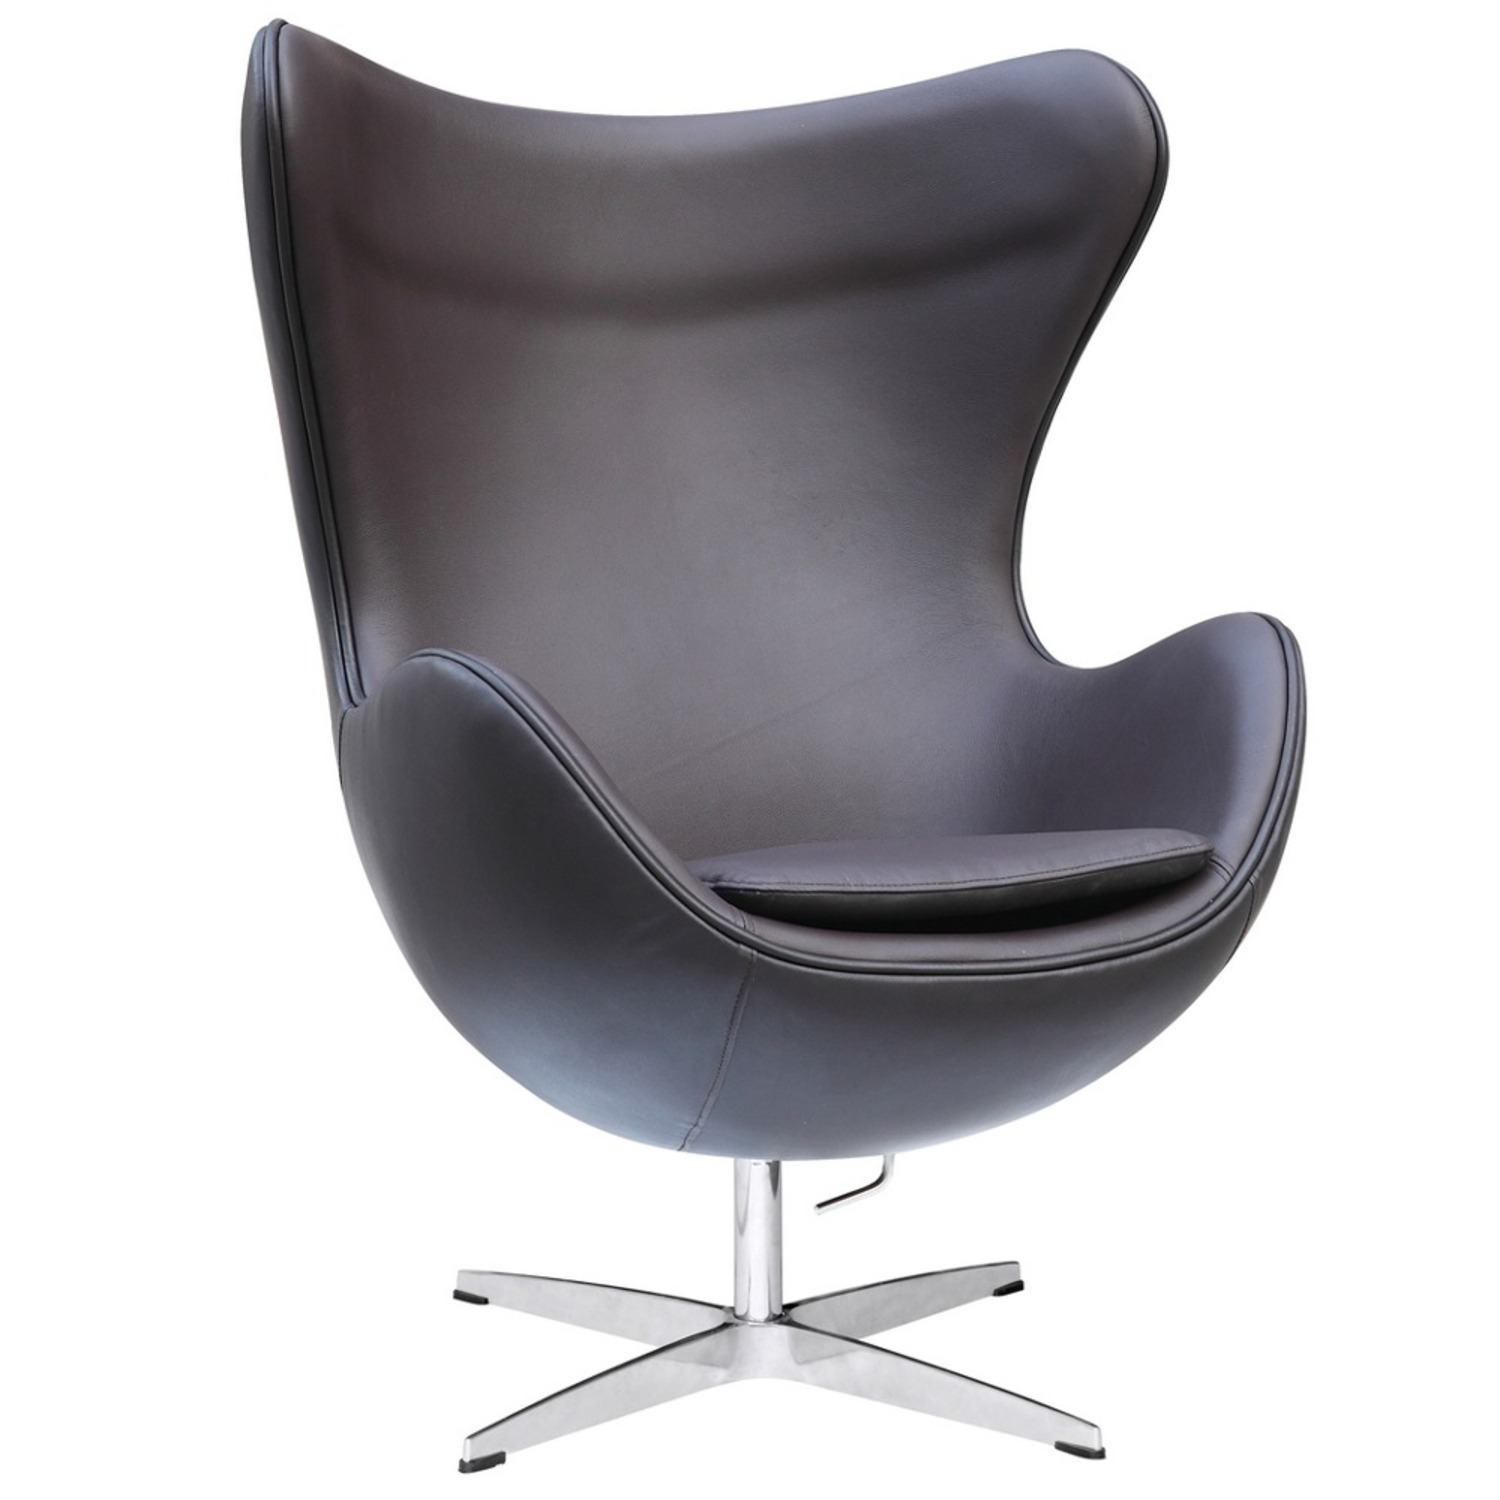 Inner Chair In Brown Leather W/ Fiberglass Frame - image-0